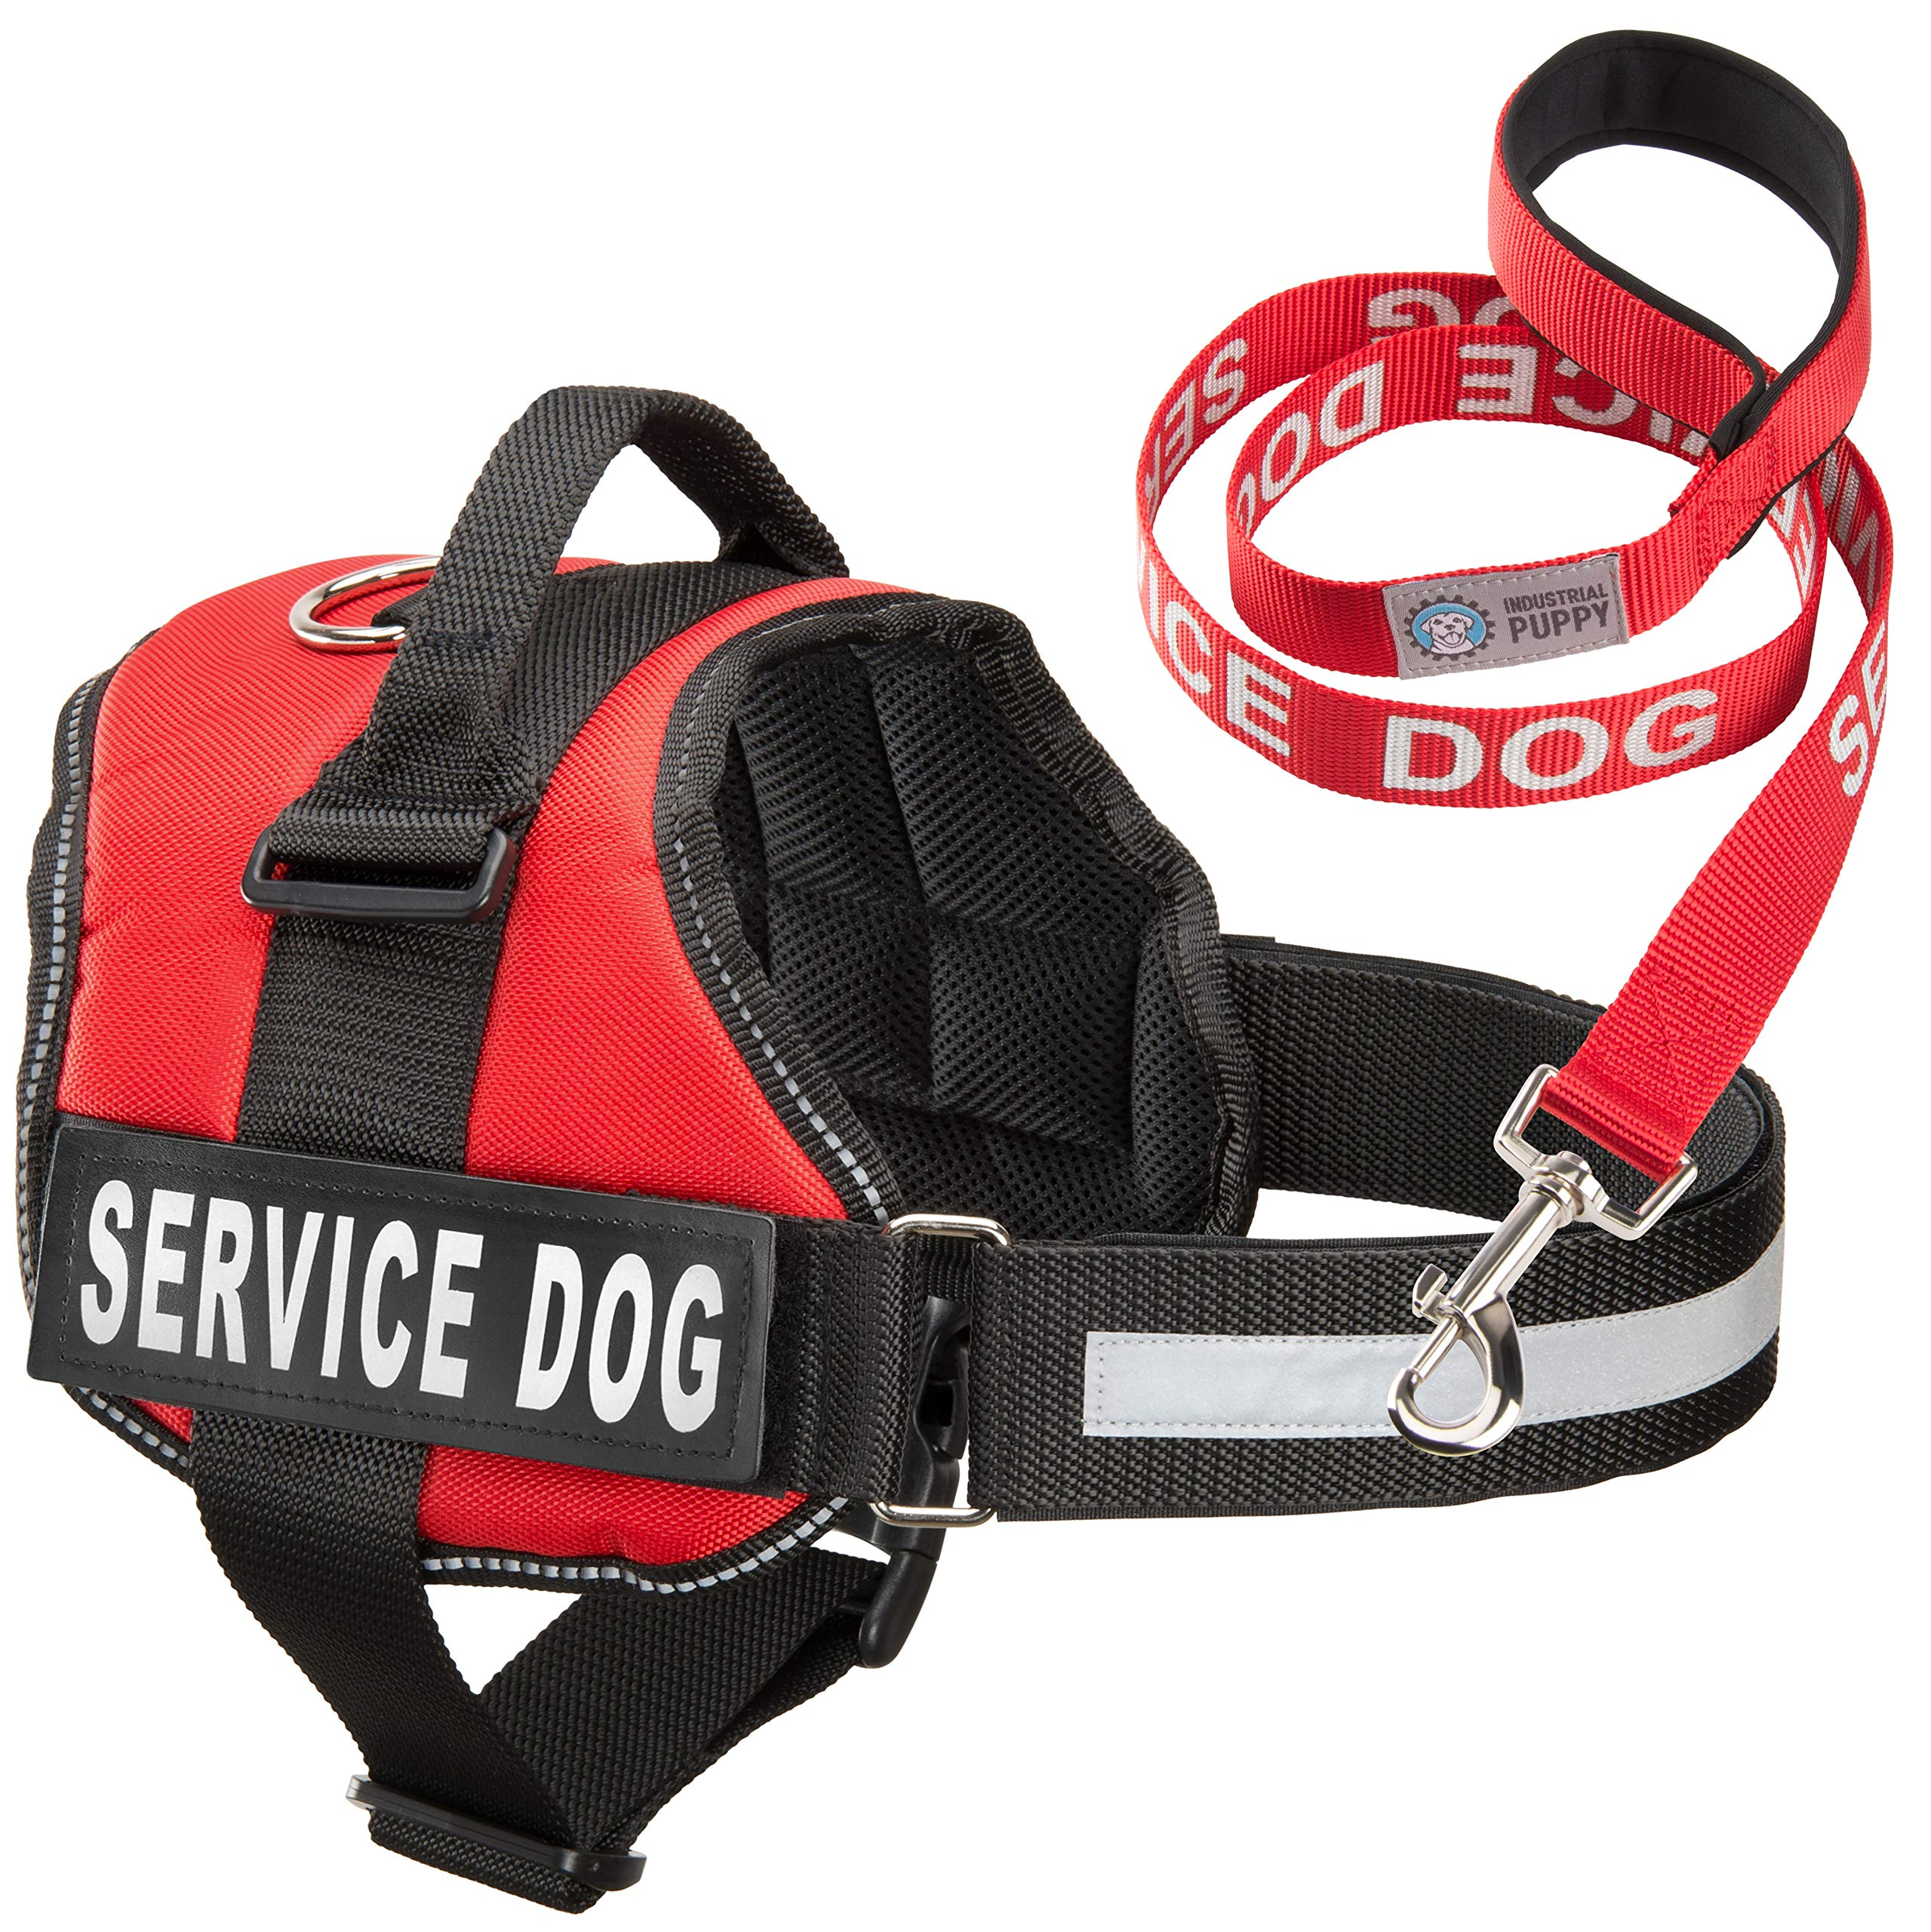 Service Dog Vest With Hook and Loop Straps & Matching Service Dog Leash Set - Harnesses From XXS to XXL - Service Dog Harness Features Reflective Patch and Comfortable Mesh Design (Red, XXS) by Industrial Puppy